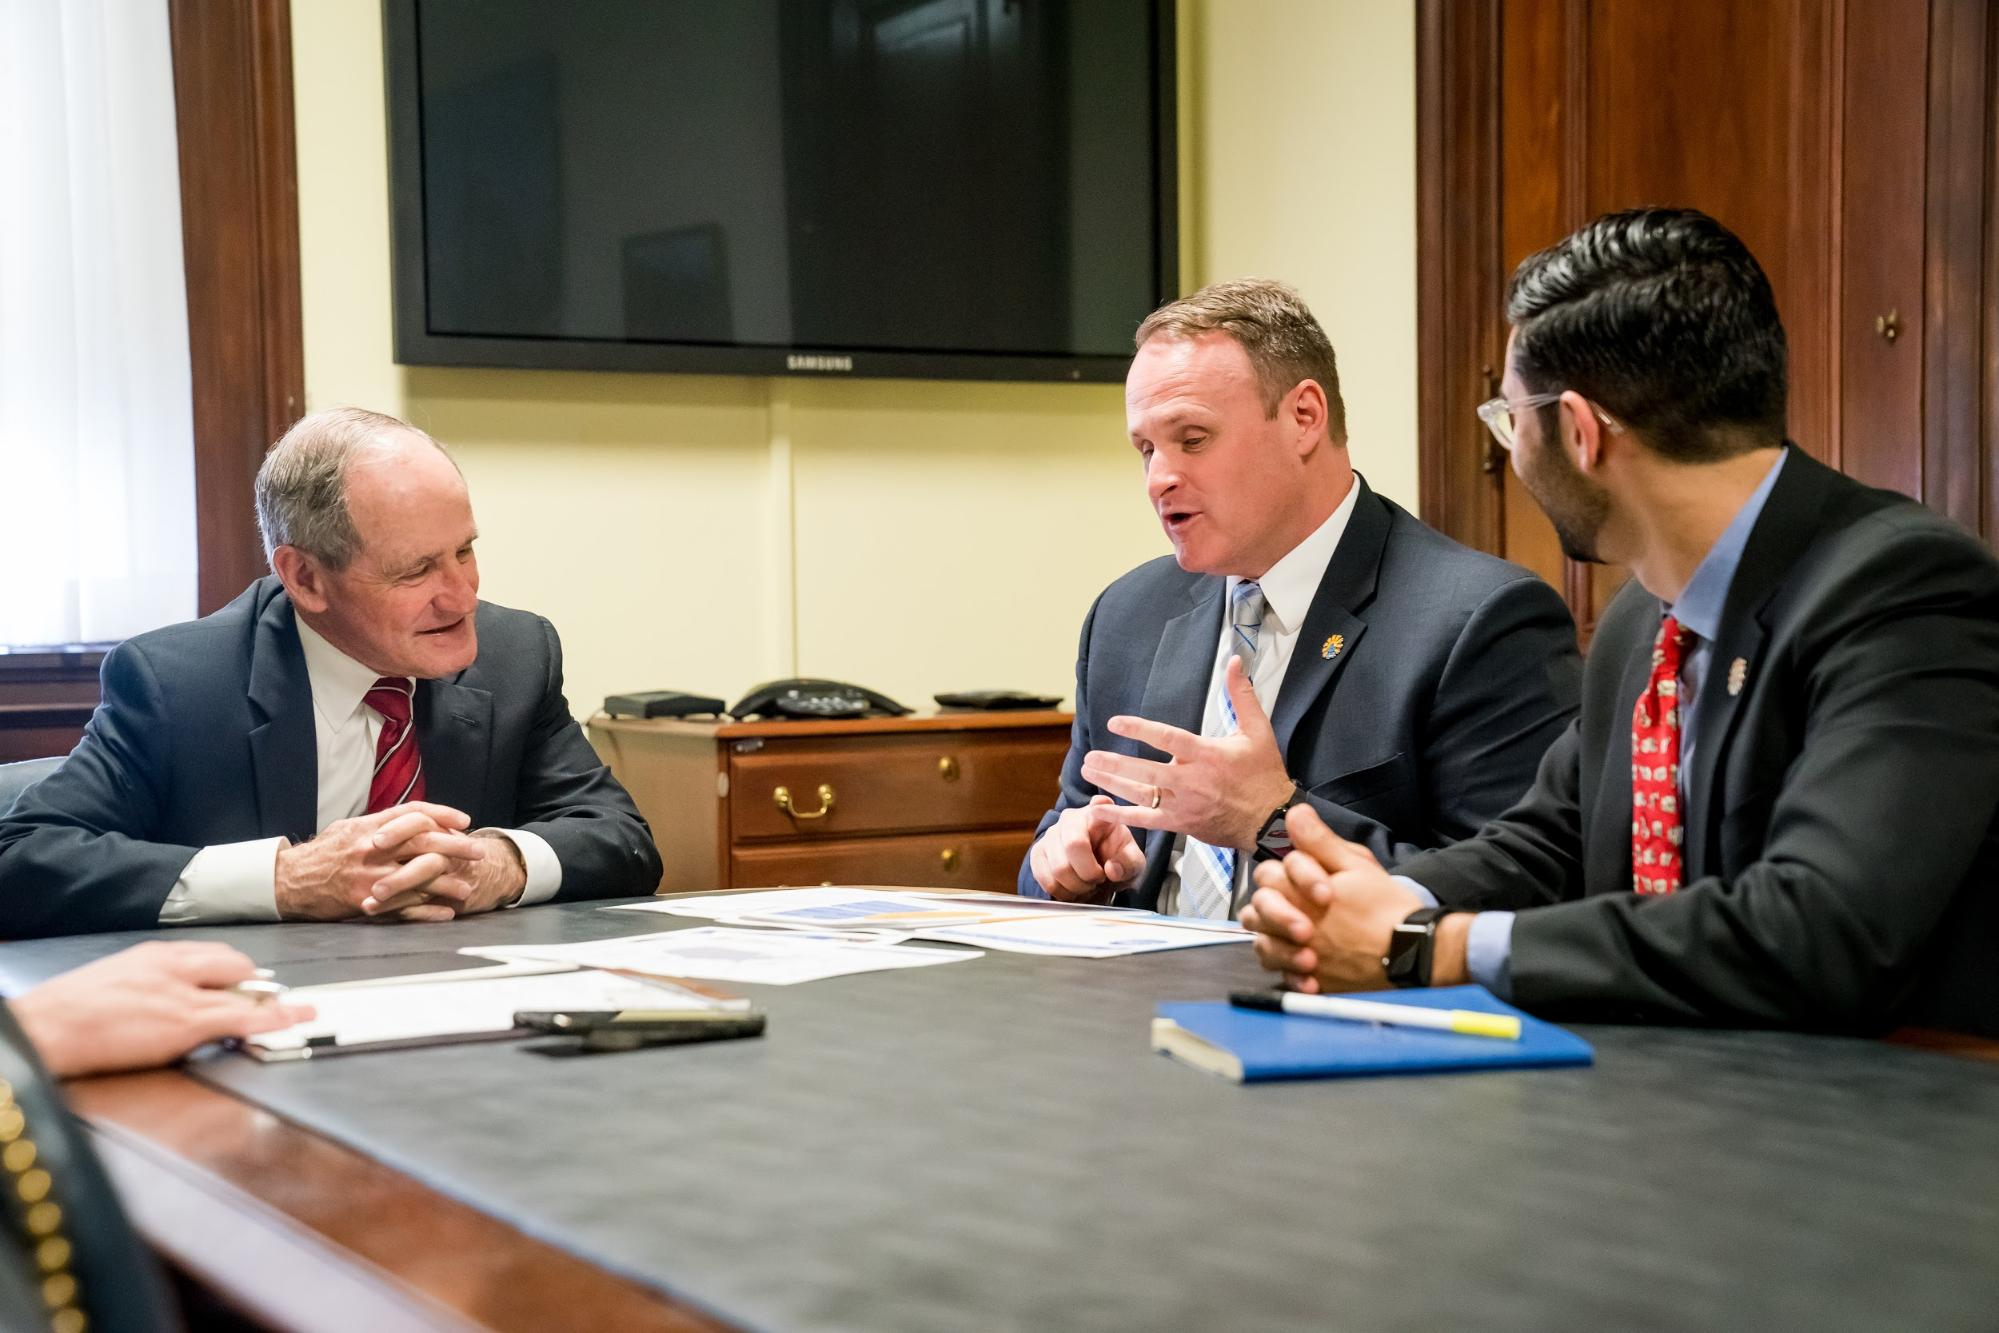 Dr. Adam Hodges speaking with United States Senator Jim Risch in 2019.